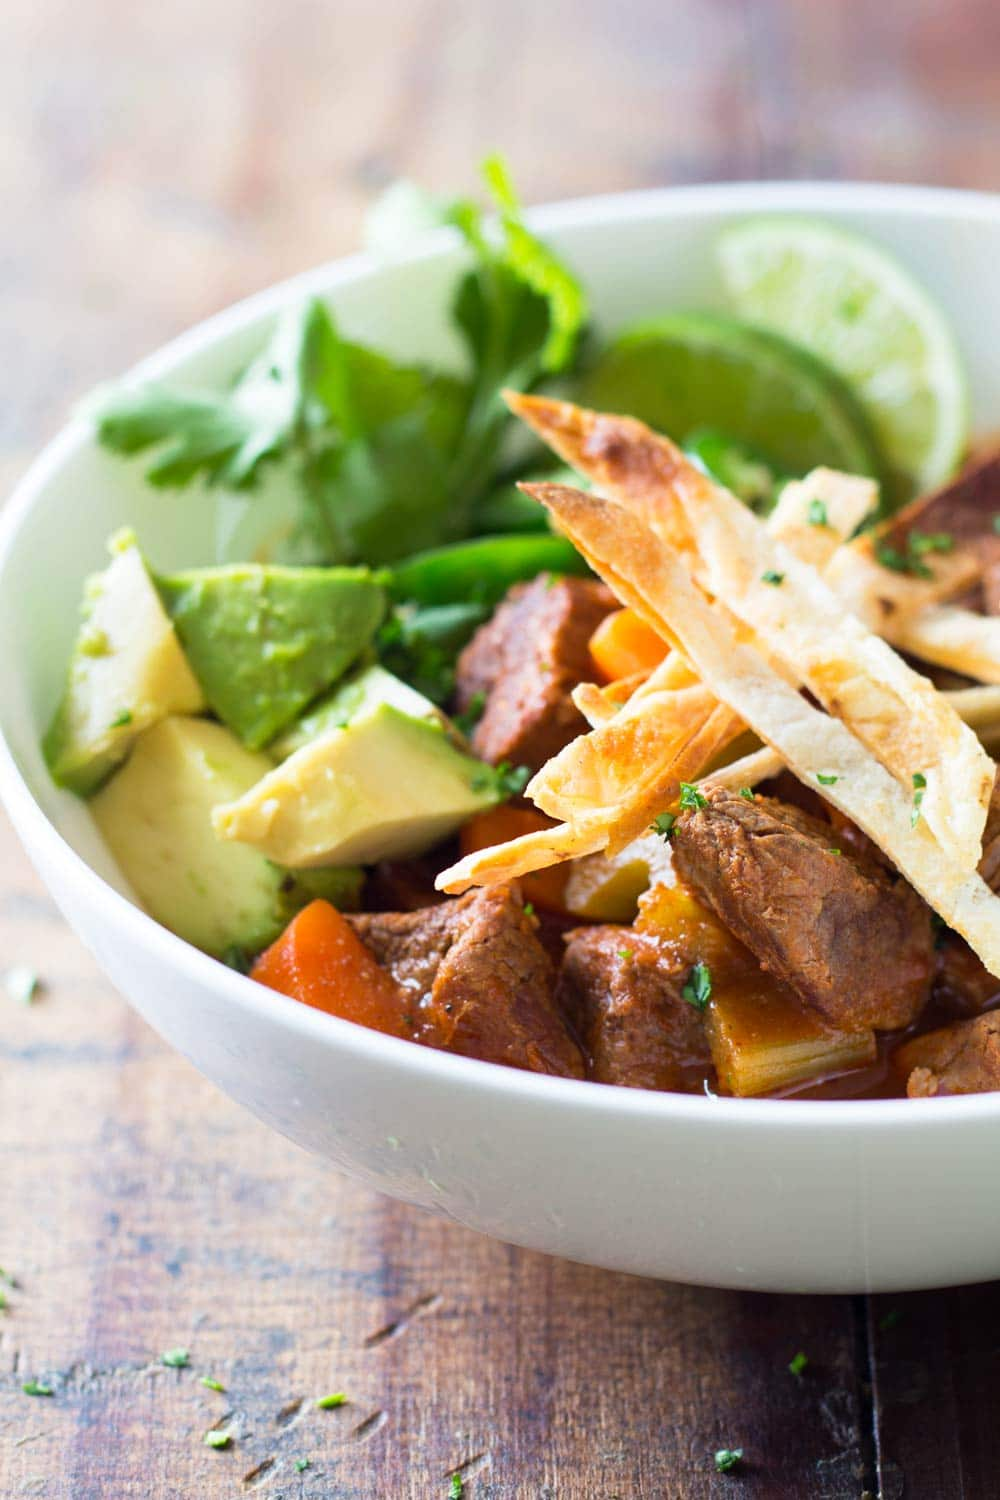 Snowy and cold winter days scream for hearty Mexican Beef Stew topped with delicious avocado, spicy jalapeño, crispy tortilla and juicy lime wedges!